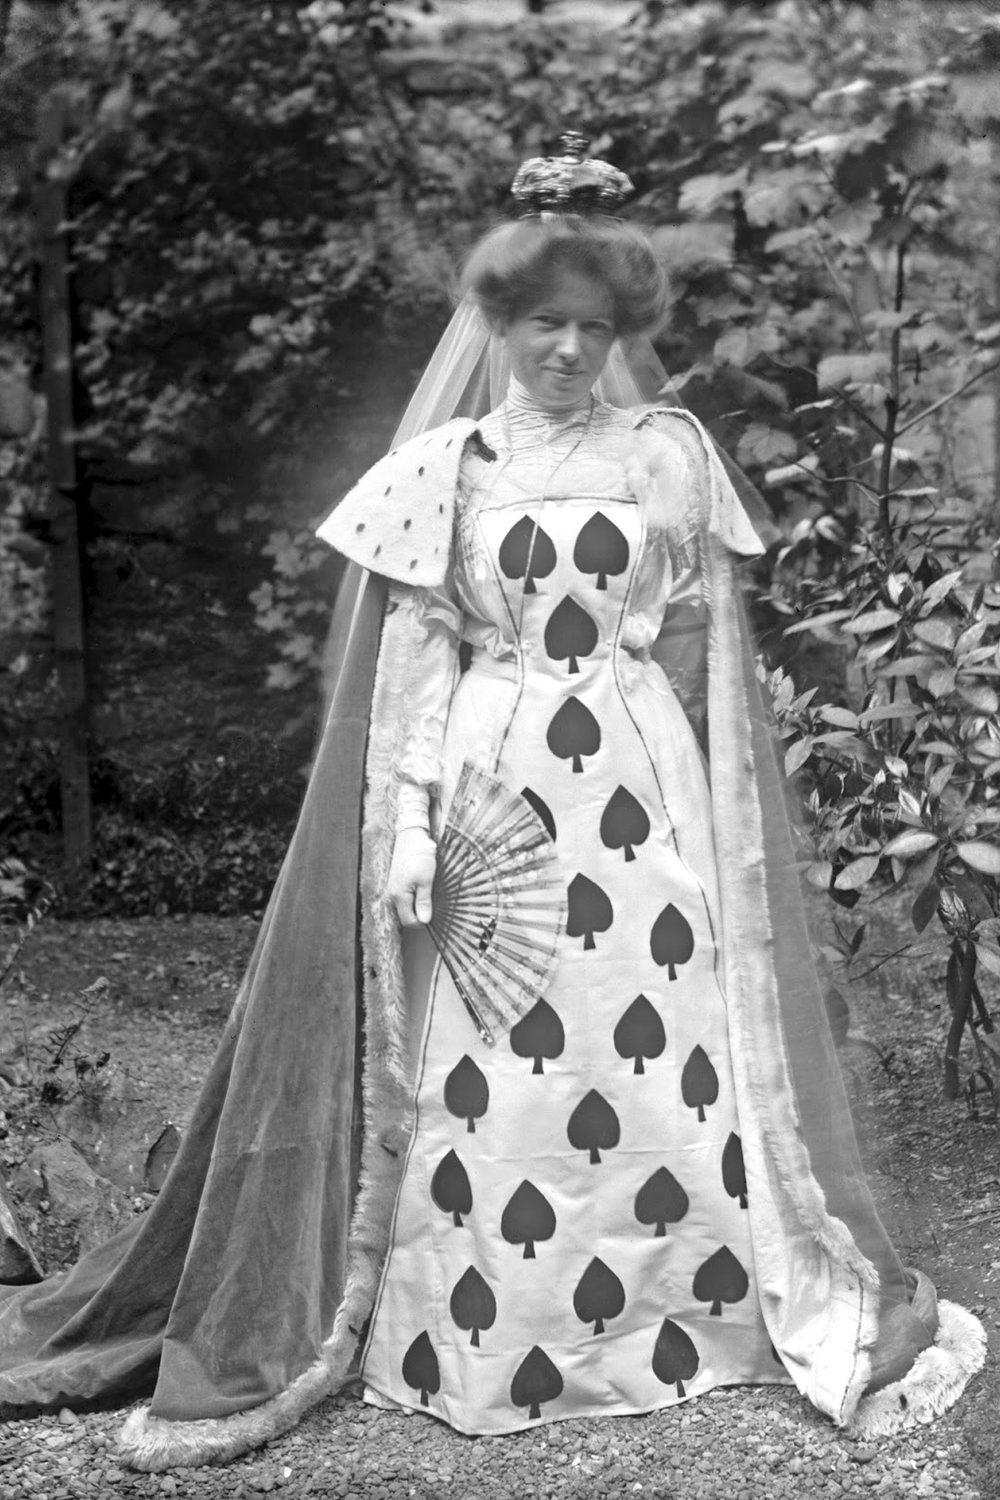 Get inspired with these vintage Halloween costume ideas. How about the Queen of Spades?